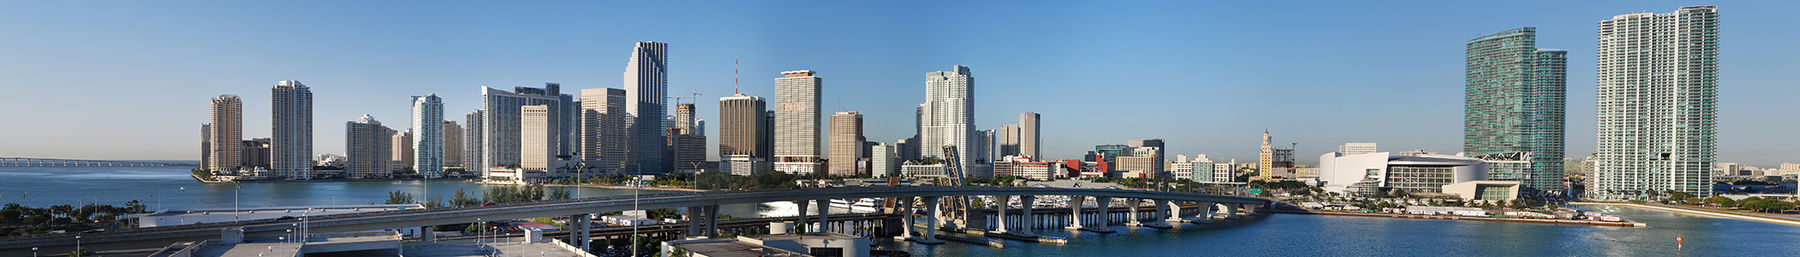 DowntownMiami banner.jpg